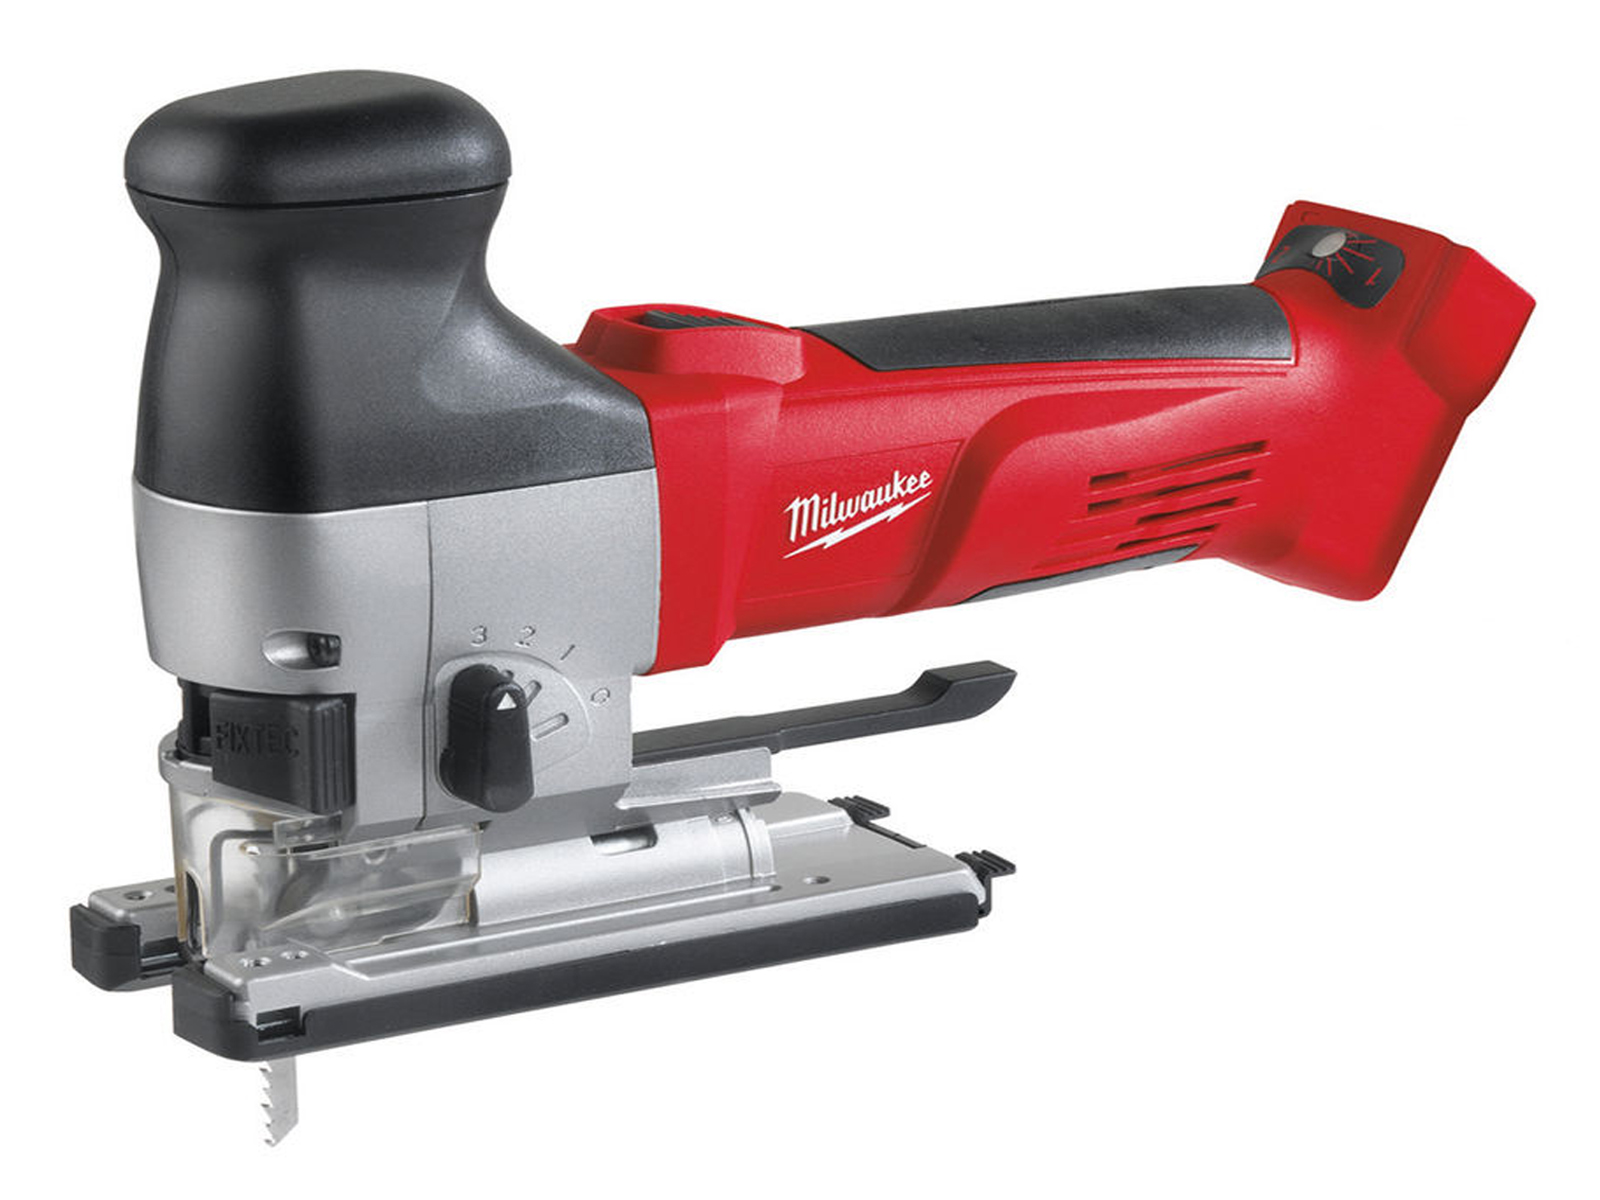 MILWAUKEE HD18JSB 18V HEAVY-DUTY BODY GRIP JIGSAW - BODY ONLY